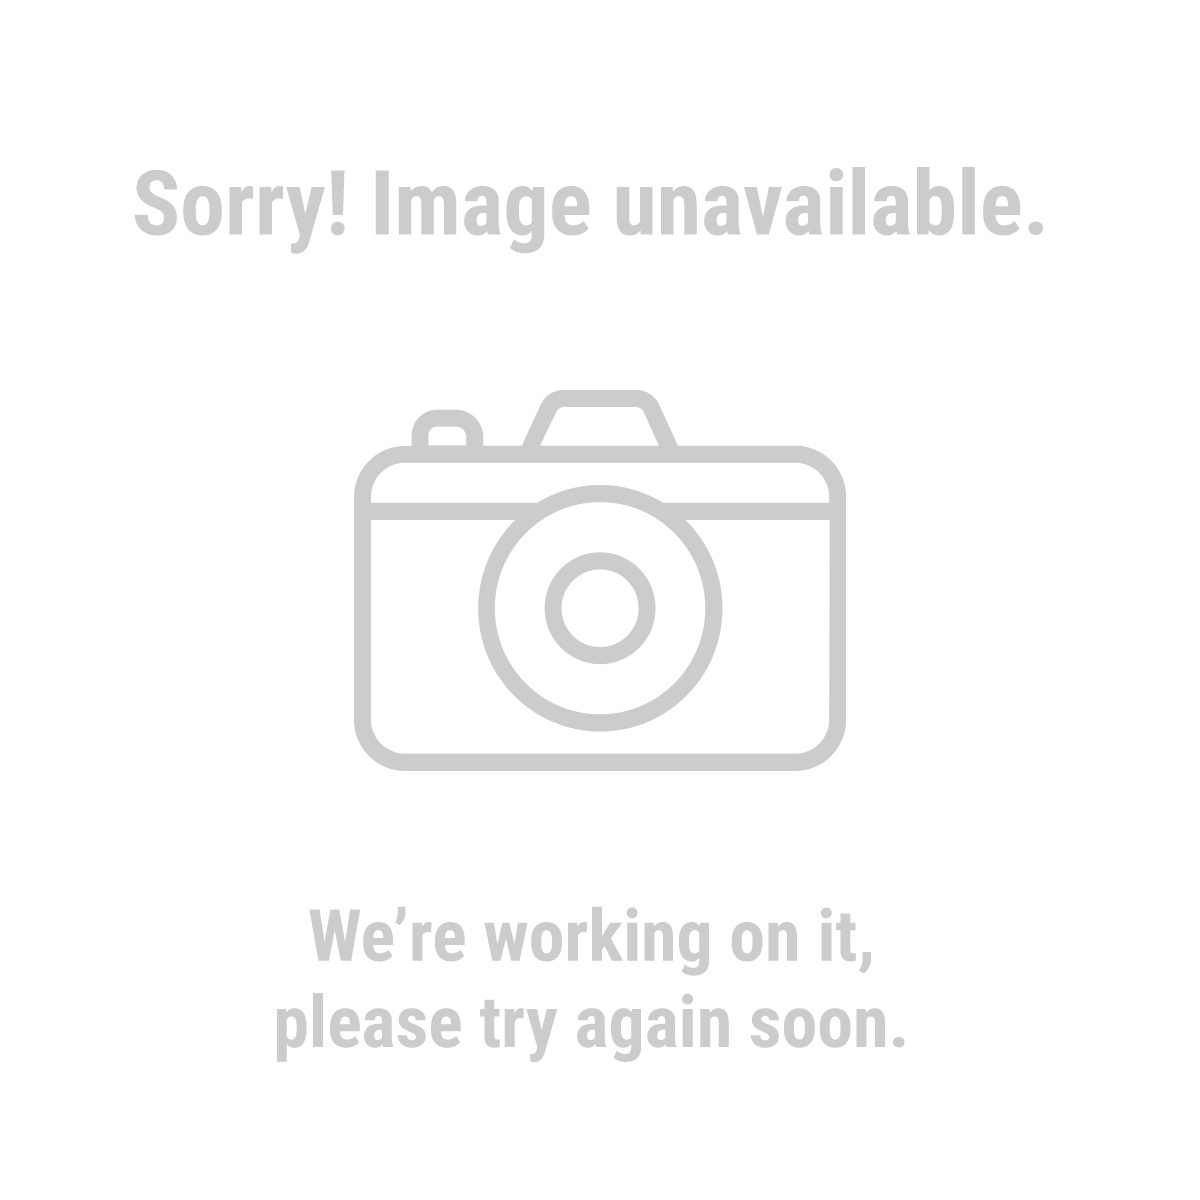 90519 Pack of 50 Trash Bags - 55 Gallon